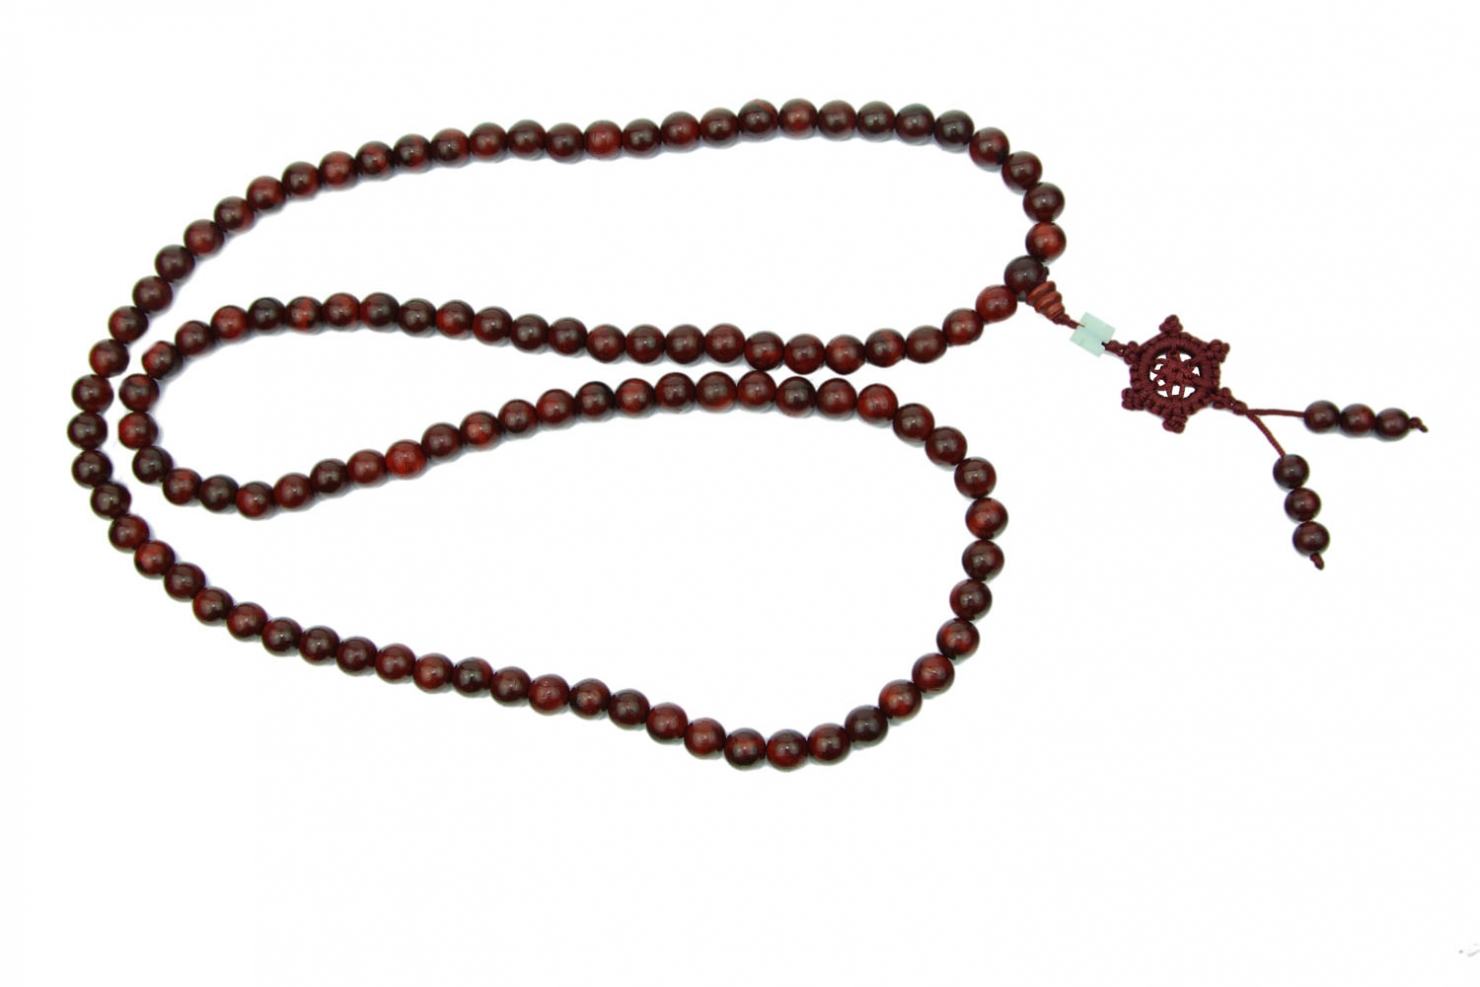 Buddha 108 Bead Mala Necklace For Meditation